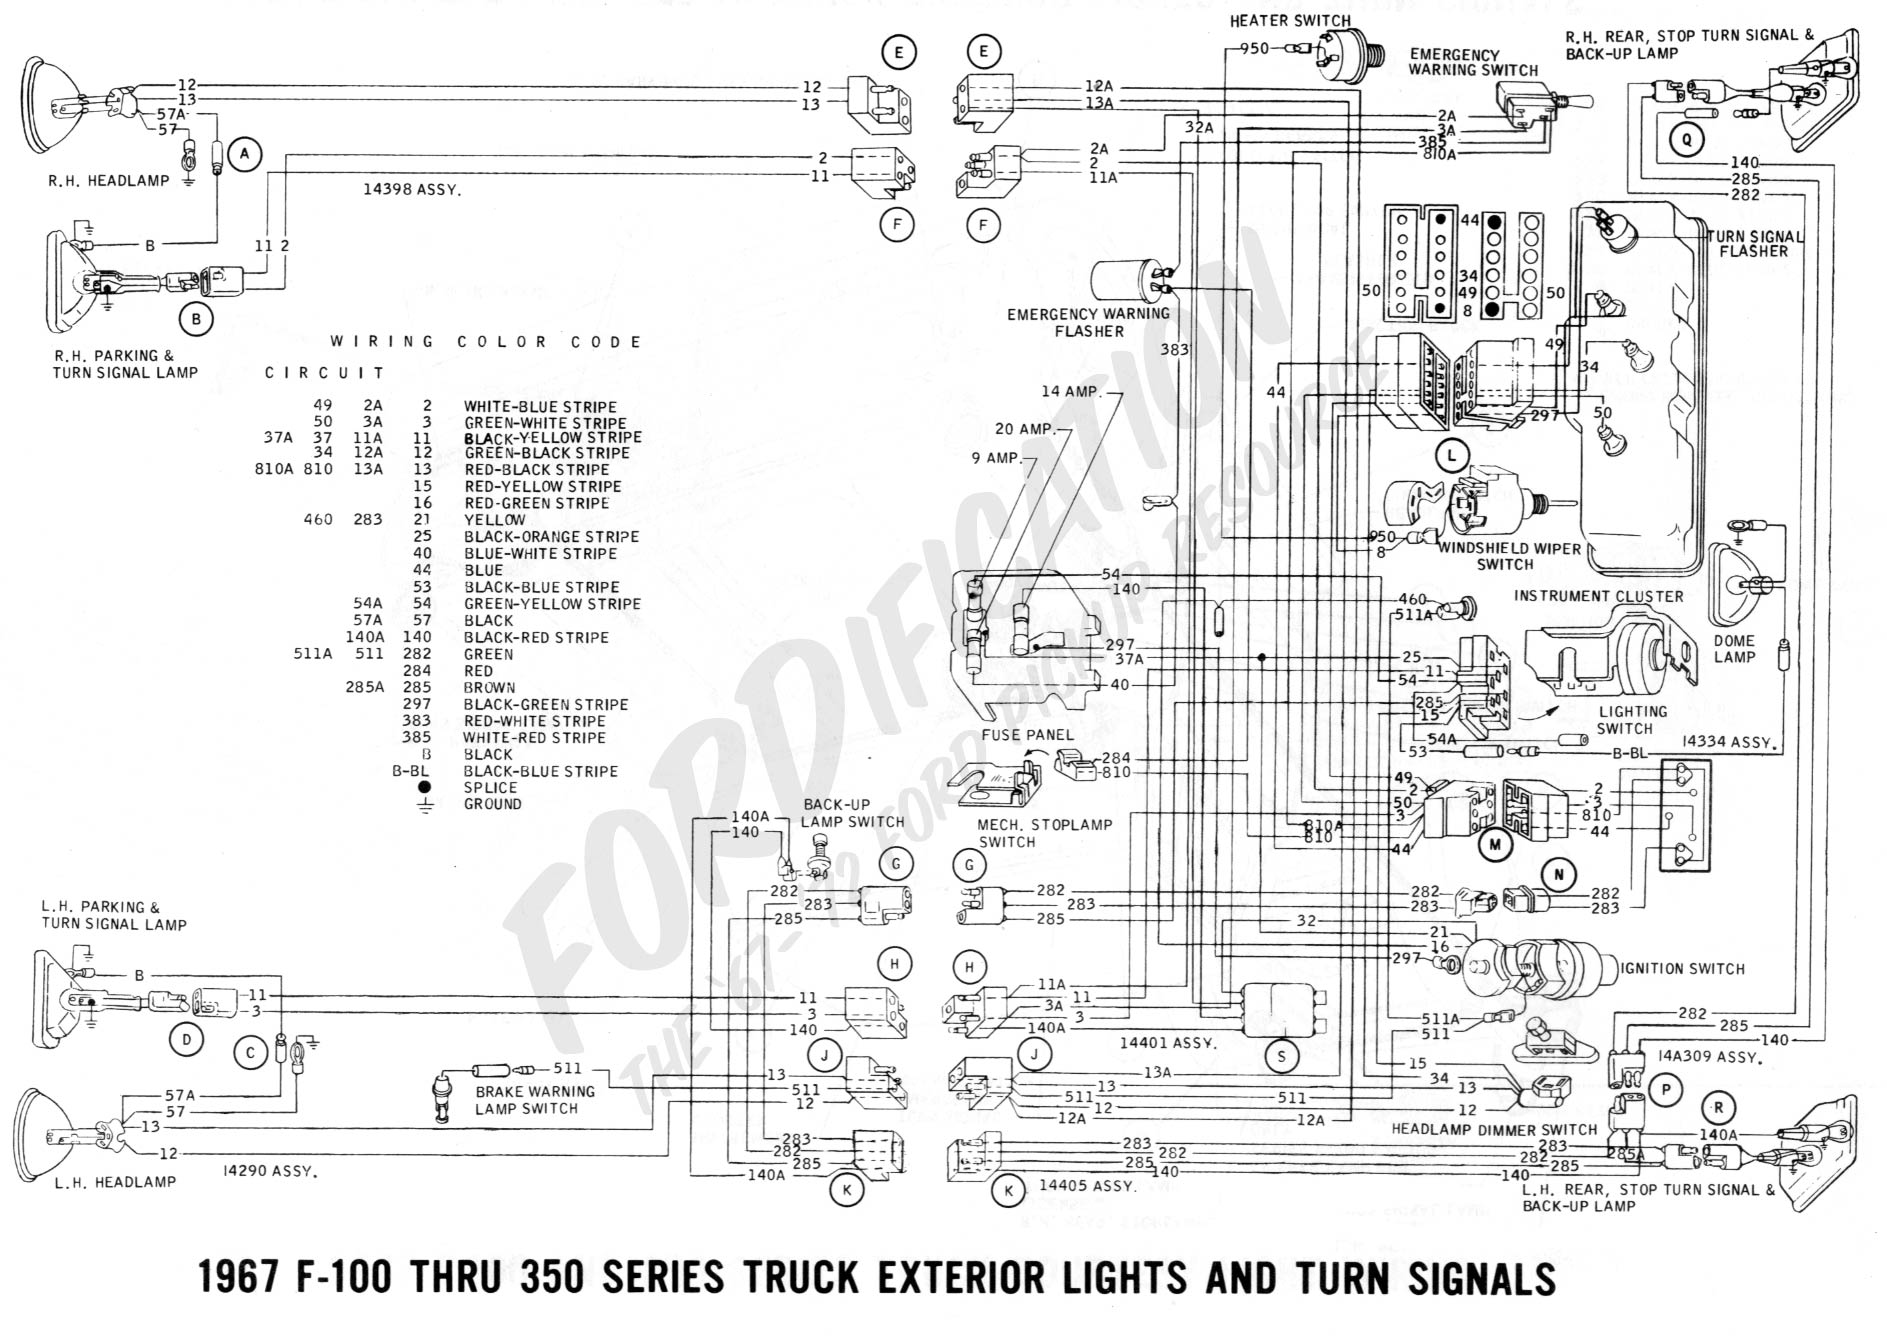 1951 Mercury Turn Signal Wiring Diagram Schematic Another 1950 Merc 1976 Ford F100 Detailed Schematics Rh Lelandlutheran Com Chevy Truck 1949